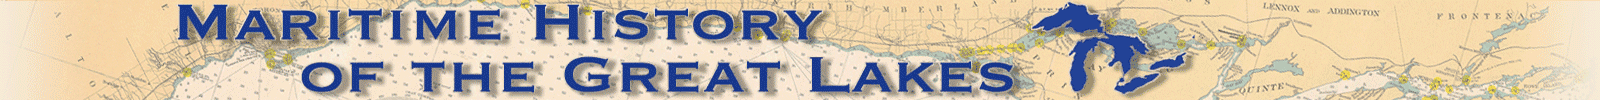 Maritime History of the Great Lakes